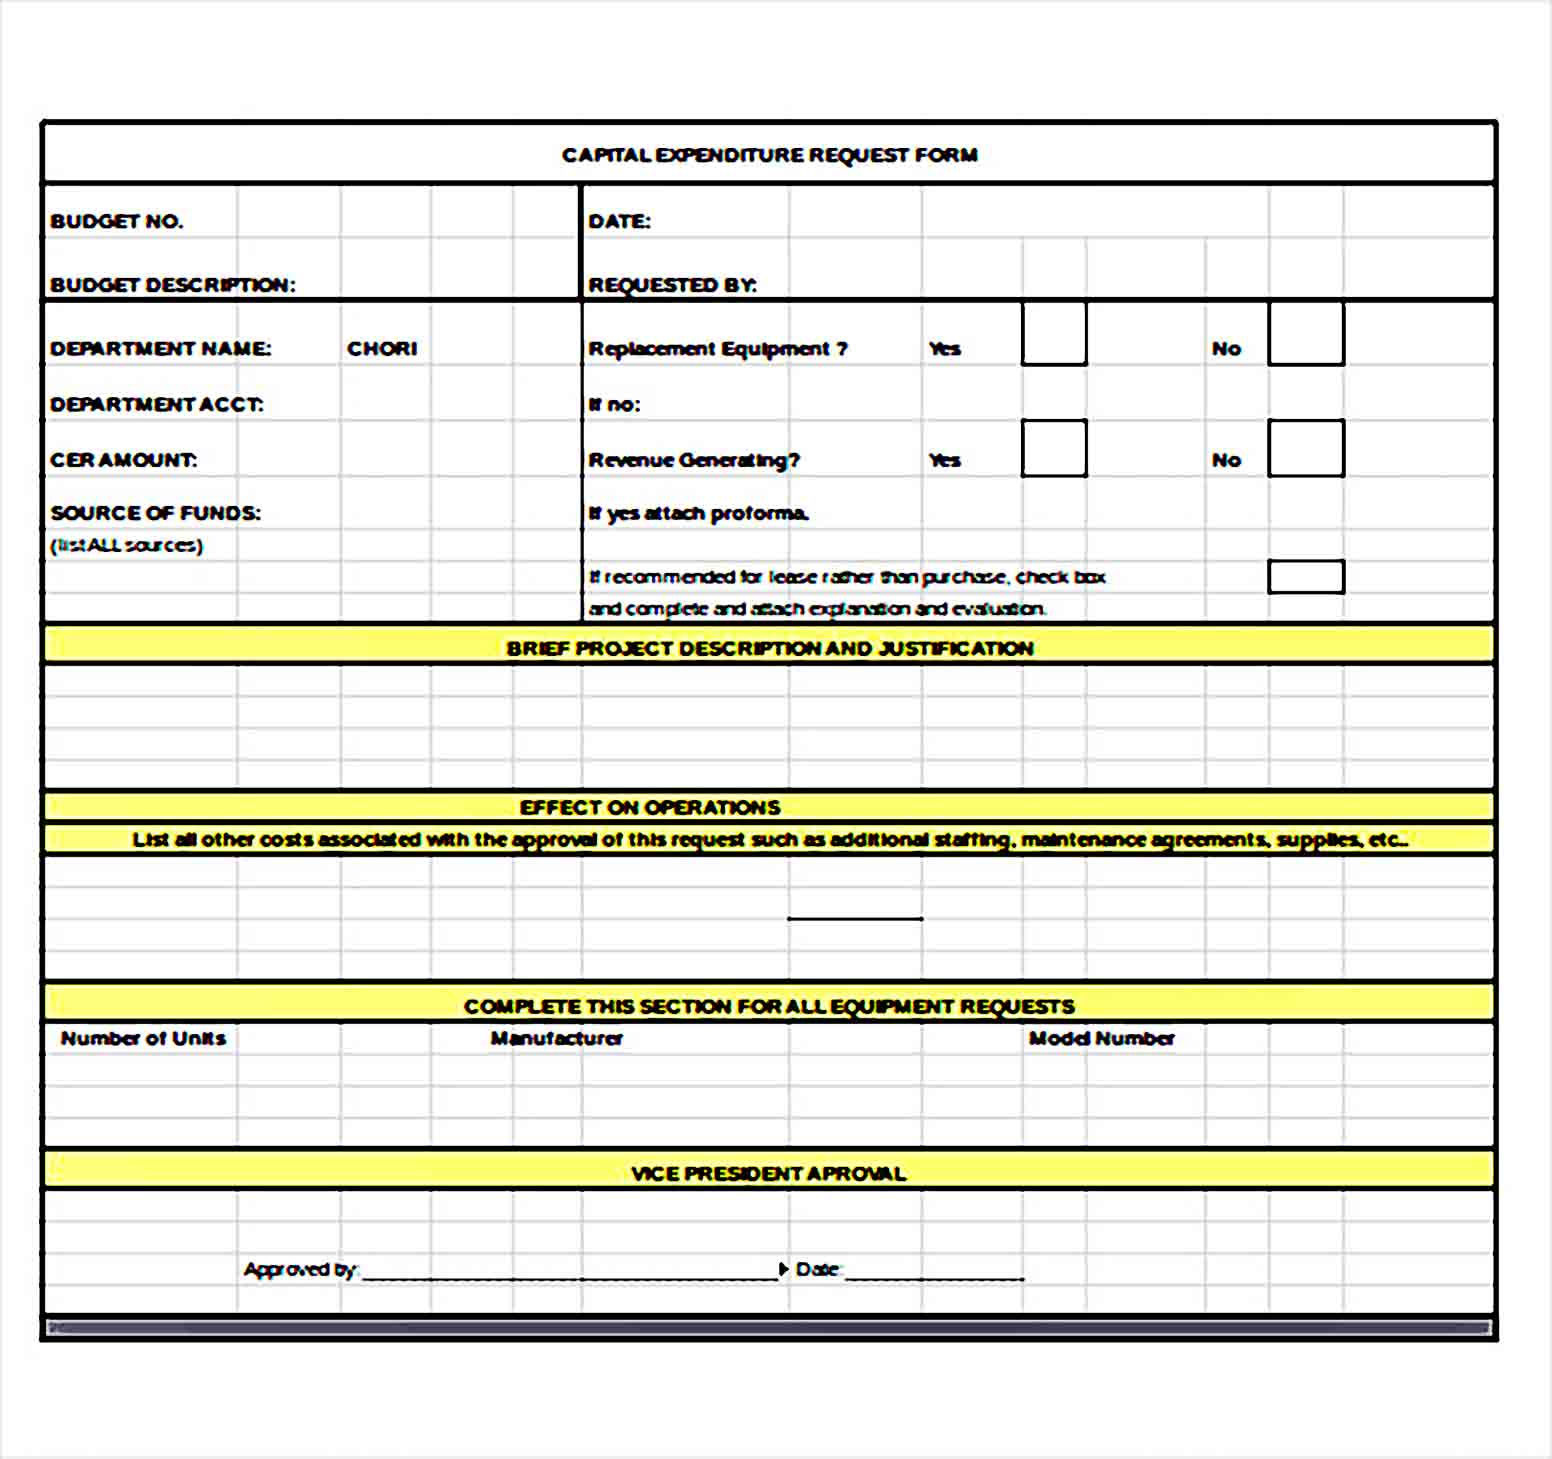 capital expenditure budget request Form Excel